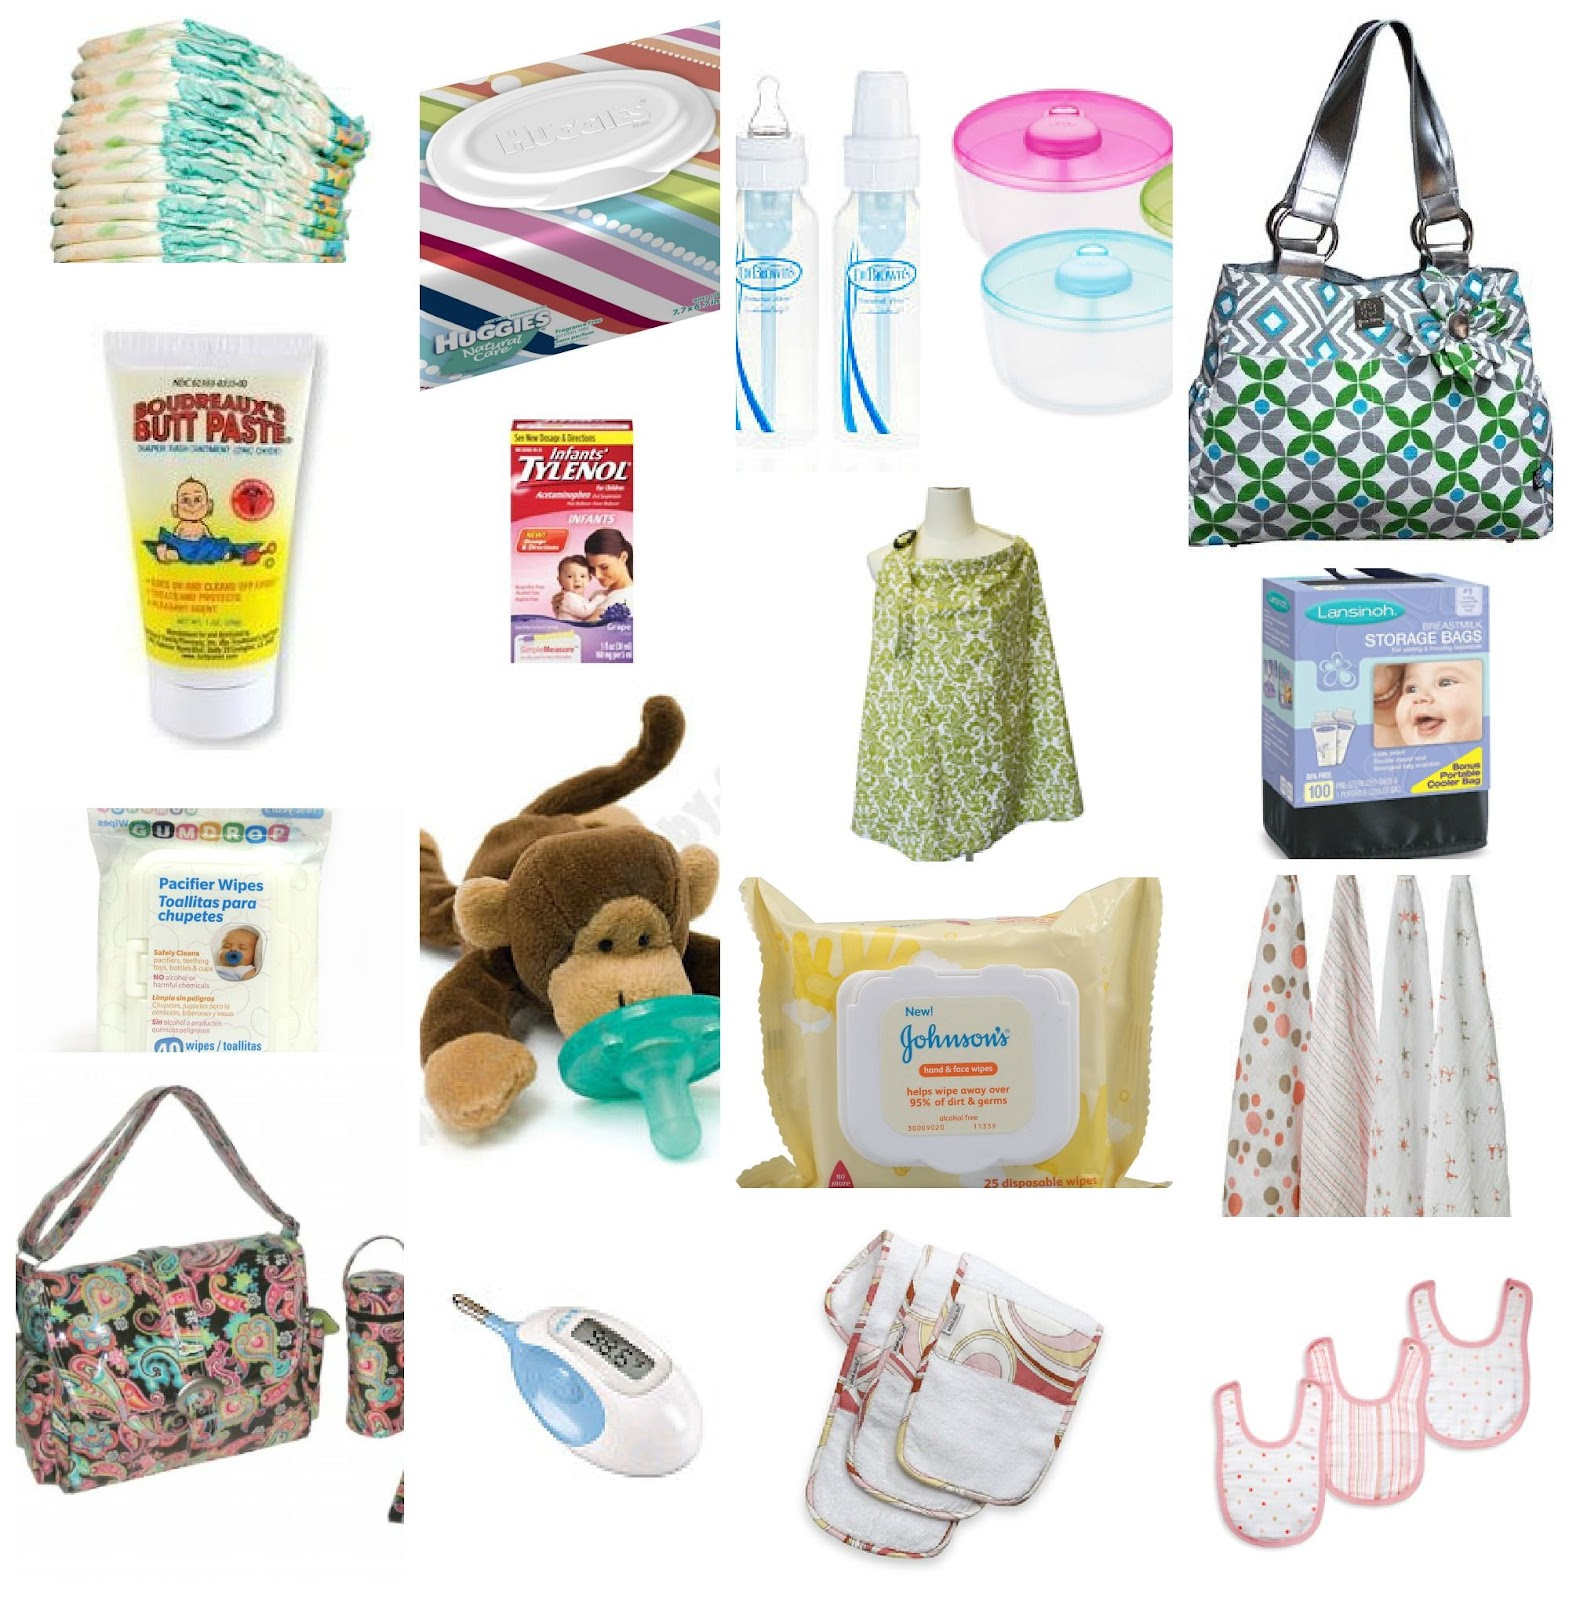 How to Pack a Diaper Bag for a Plane Trip How to Pack a Diaper Bag for a Plane Trip new picture